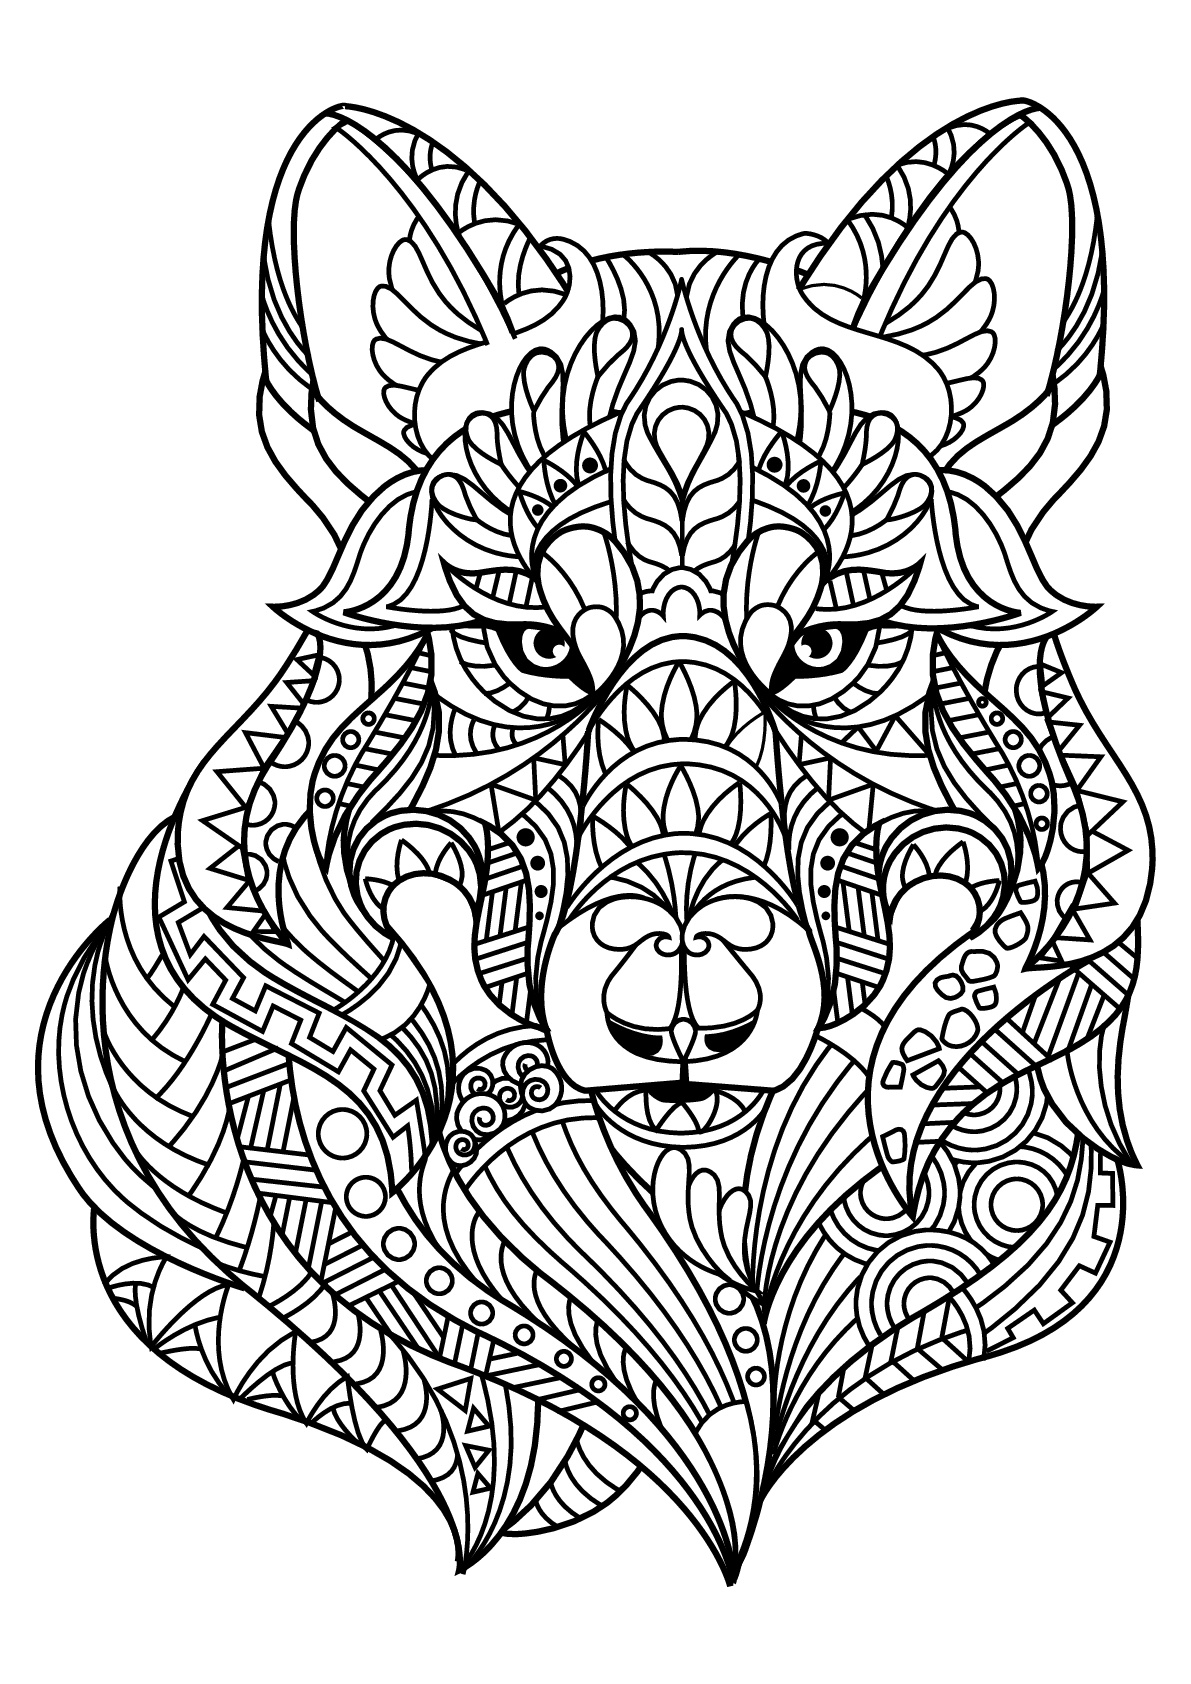 Wolf To Print For Free Wolf Kids Coloring Pages